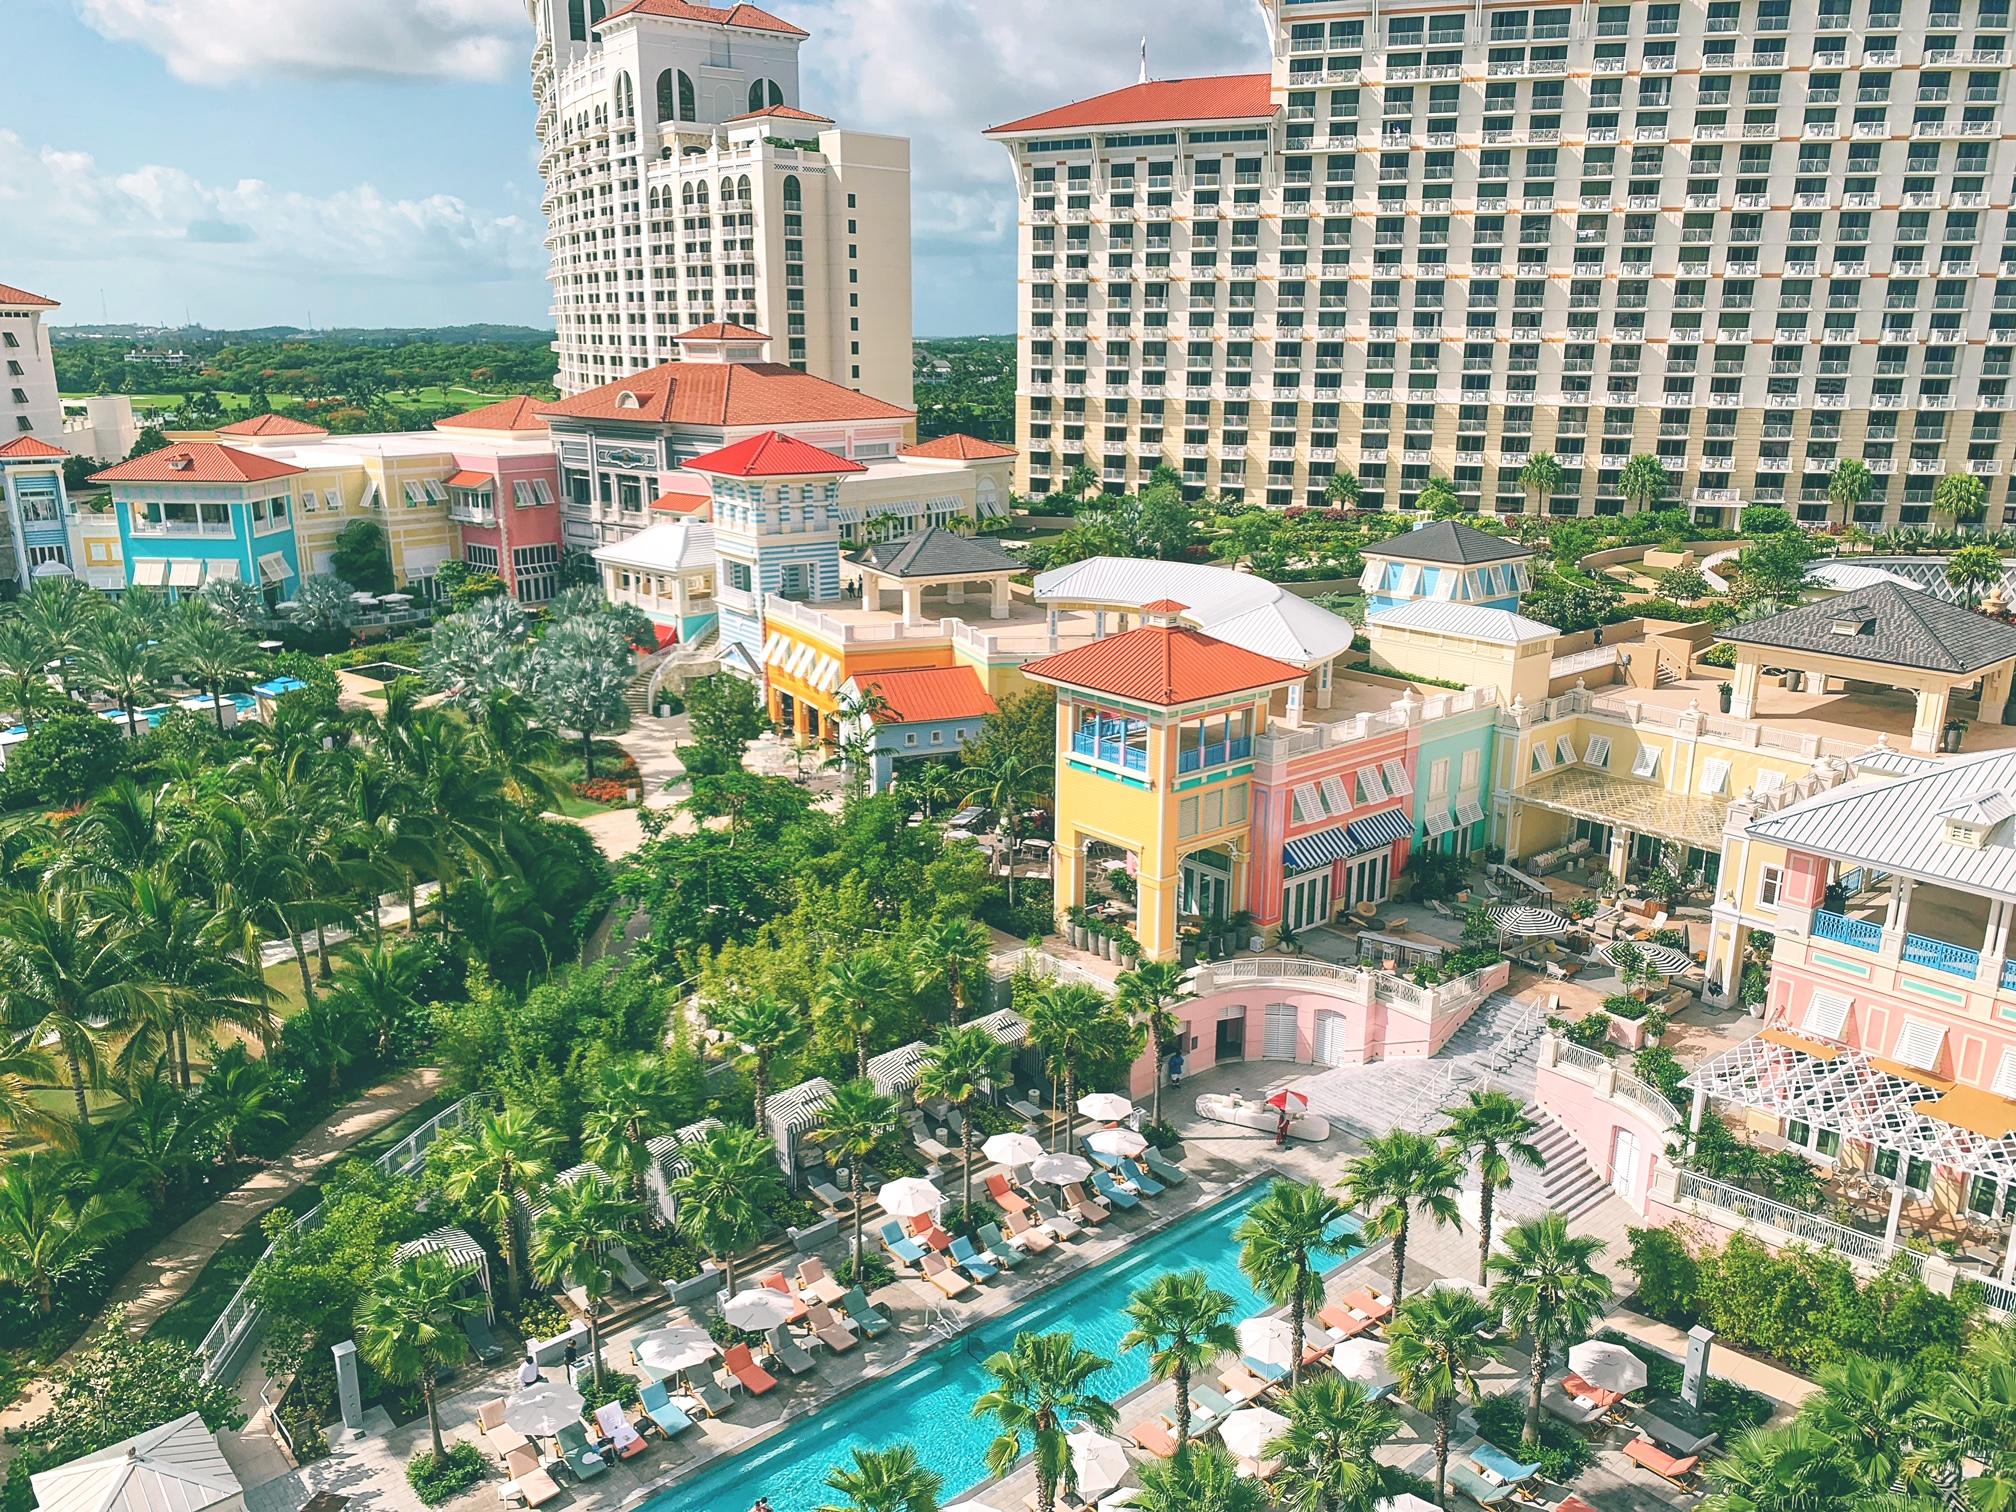 Caribbean Travel Marketplace Heats Up In The Bahamas